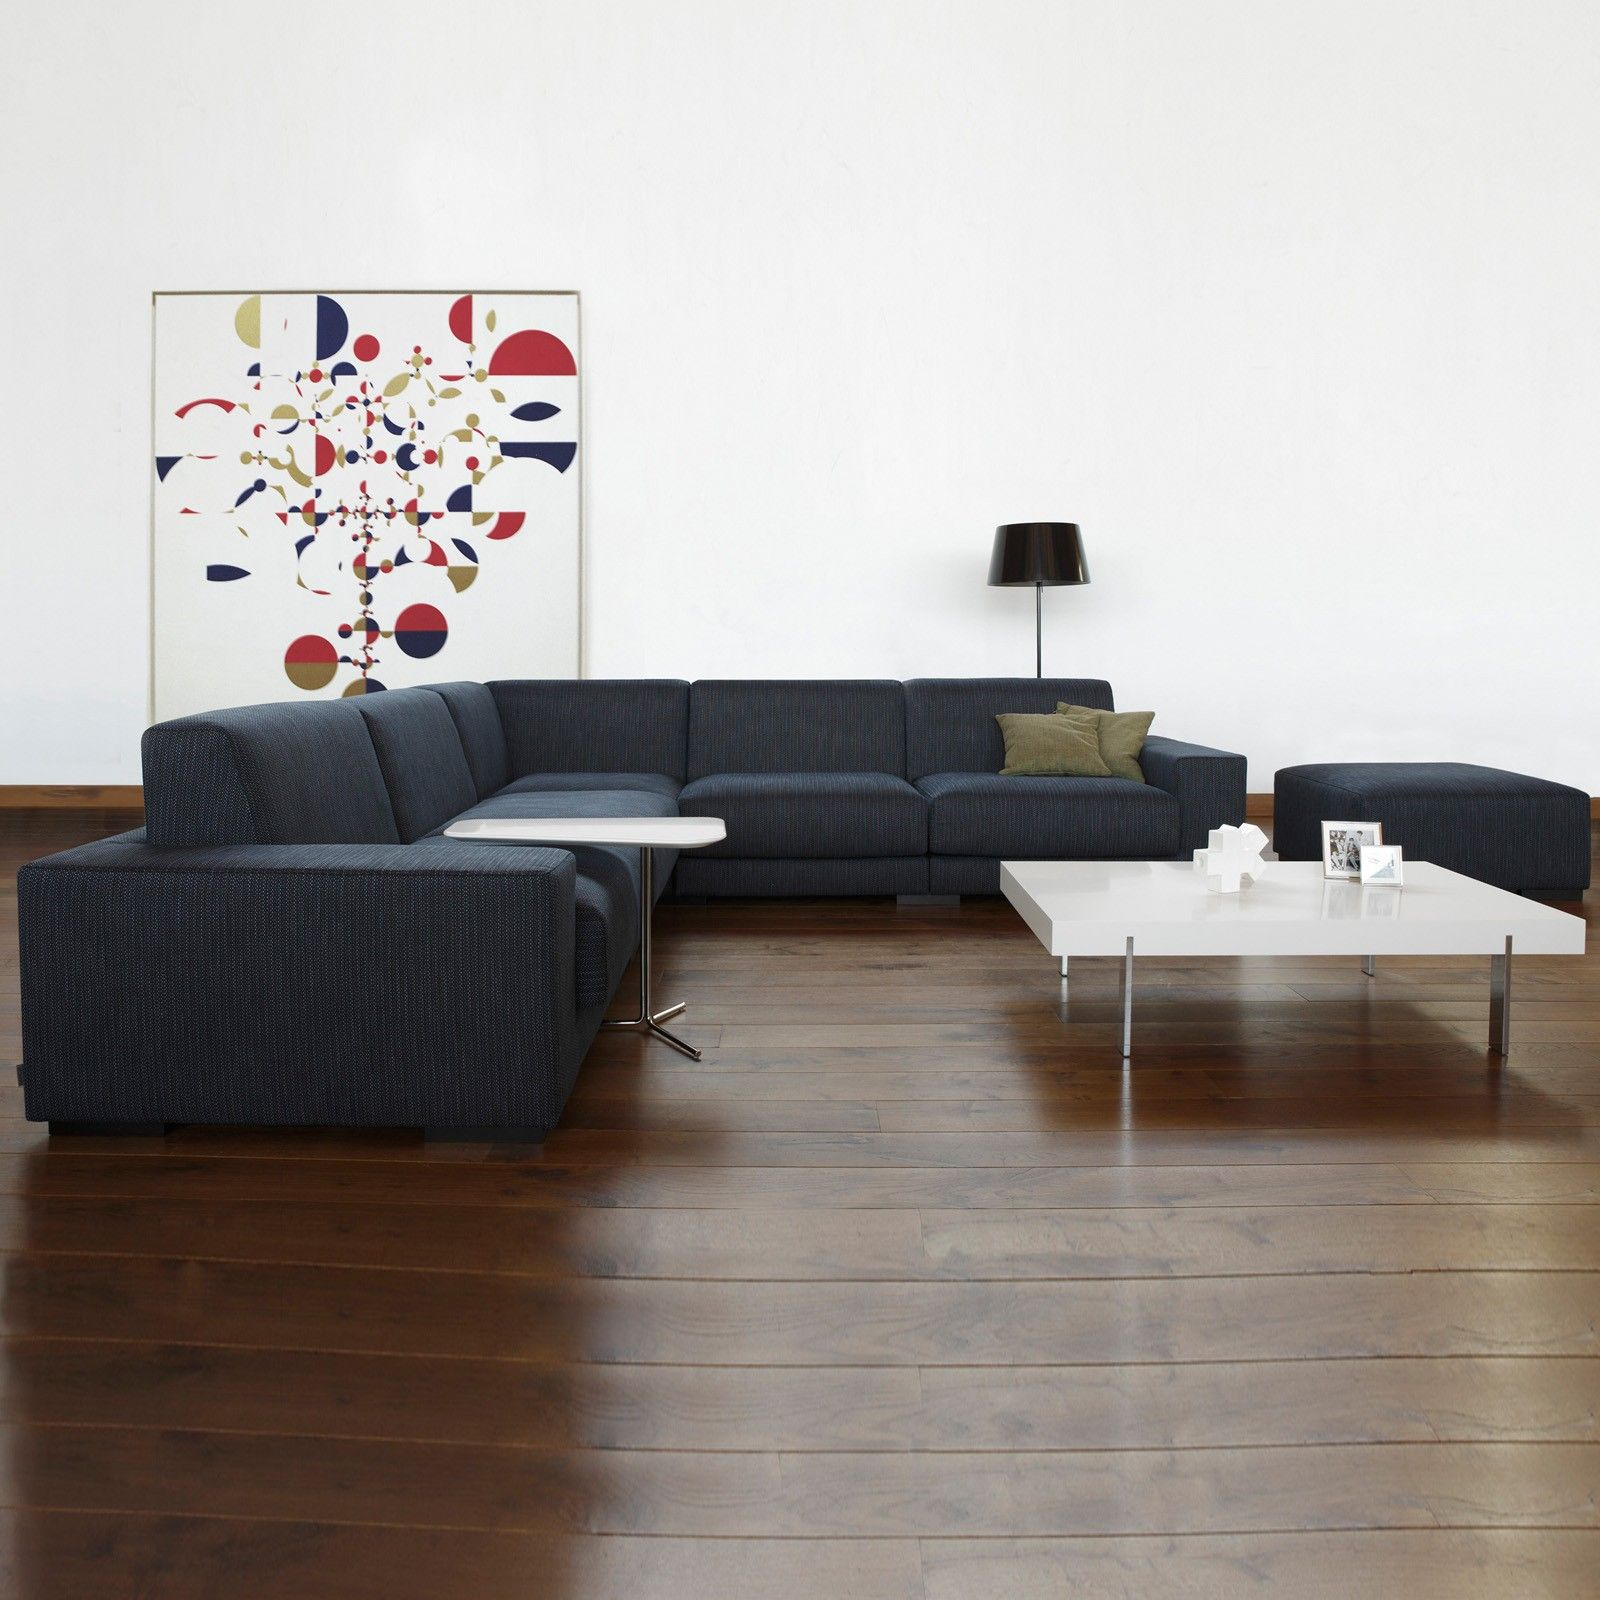 Sancal Ke Zu Furniture Residential And Contract Furniture Sydney Australia Eleva Coffee Table